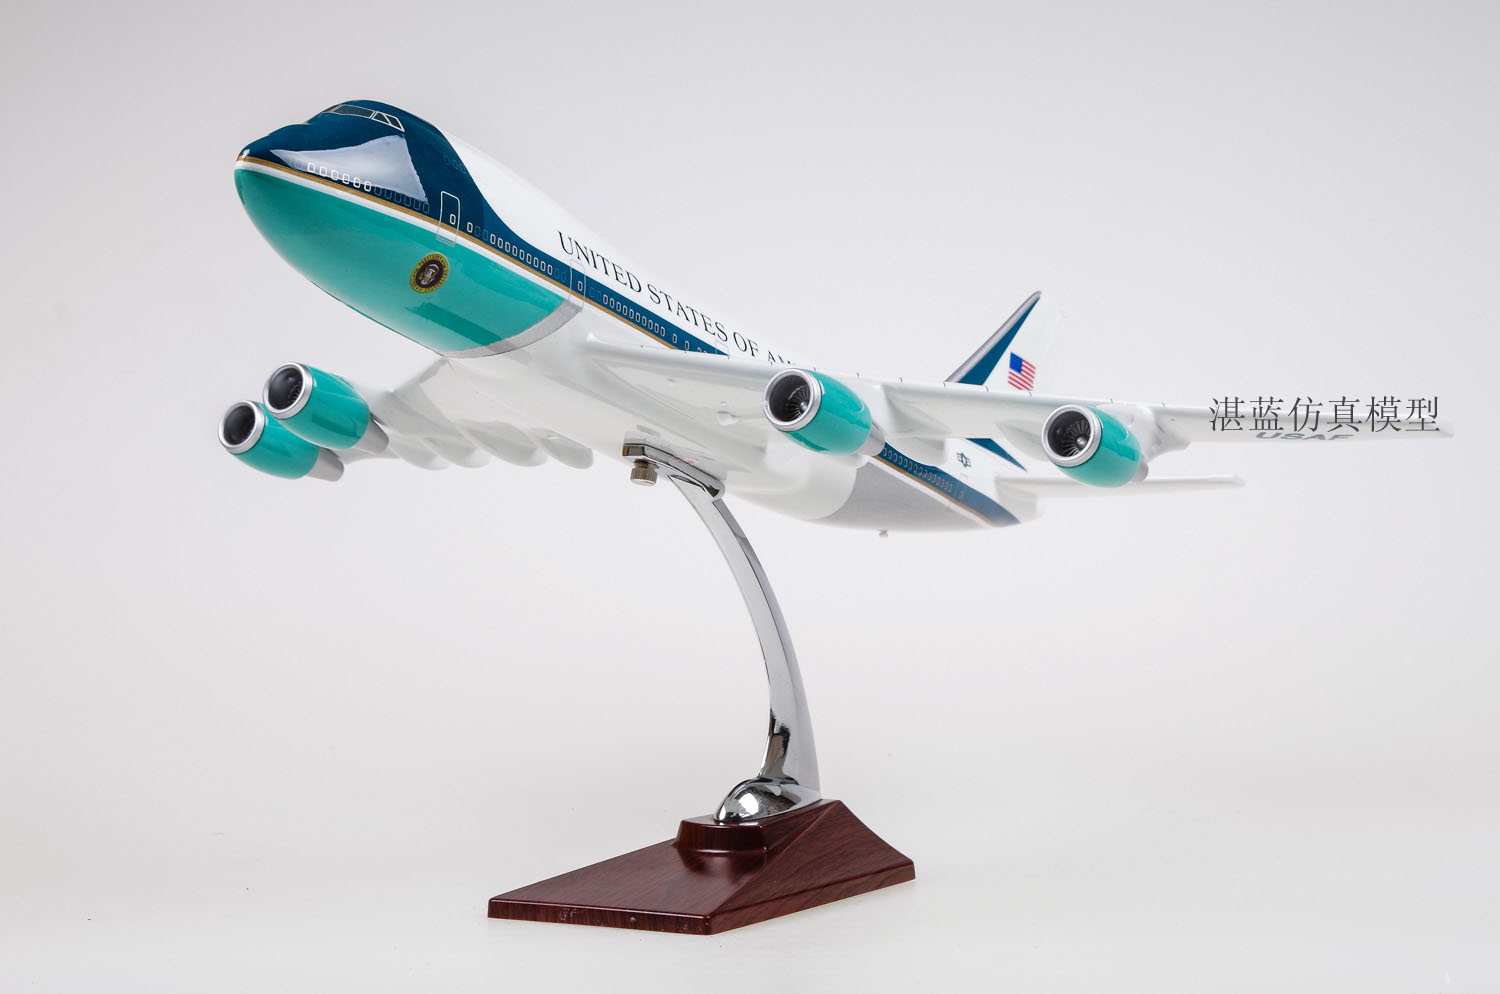 Plane Model Toys Boeing 747 Air Force One Diecast Resin Airplane Model Toy New In Box For Collection/Gift/Decoration(China (Mainland))